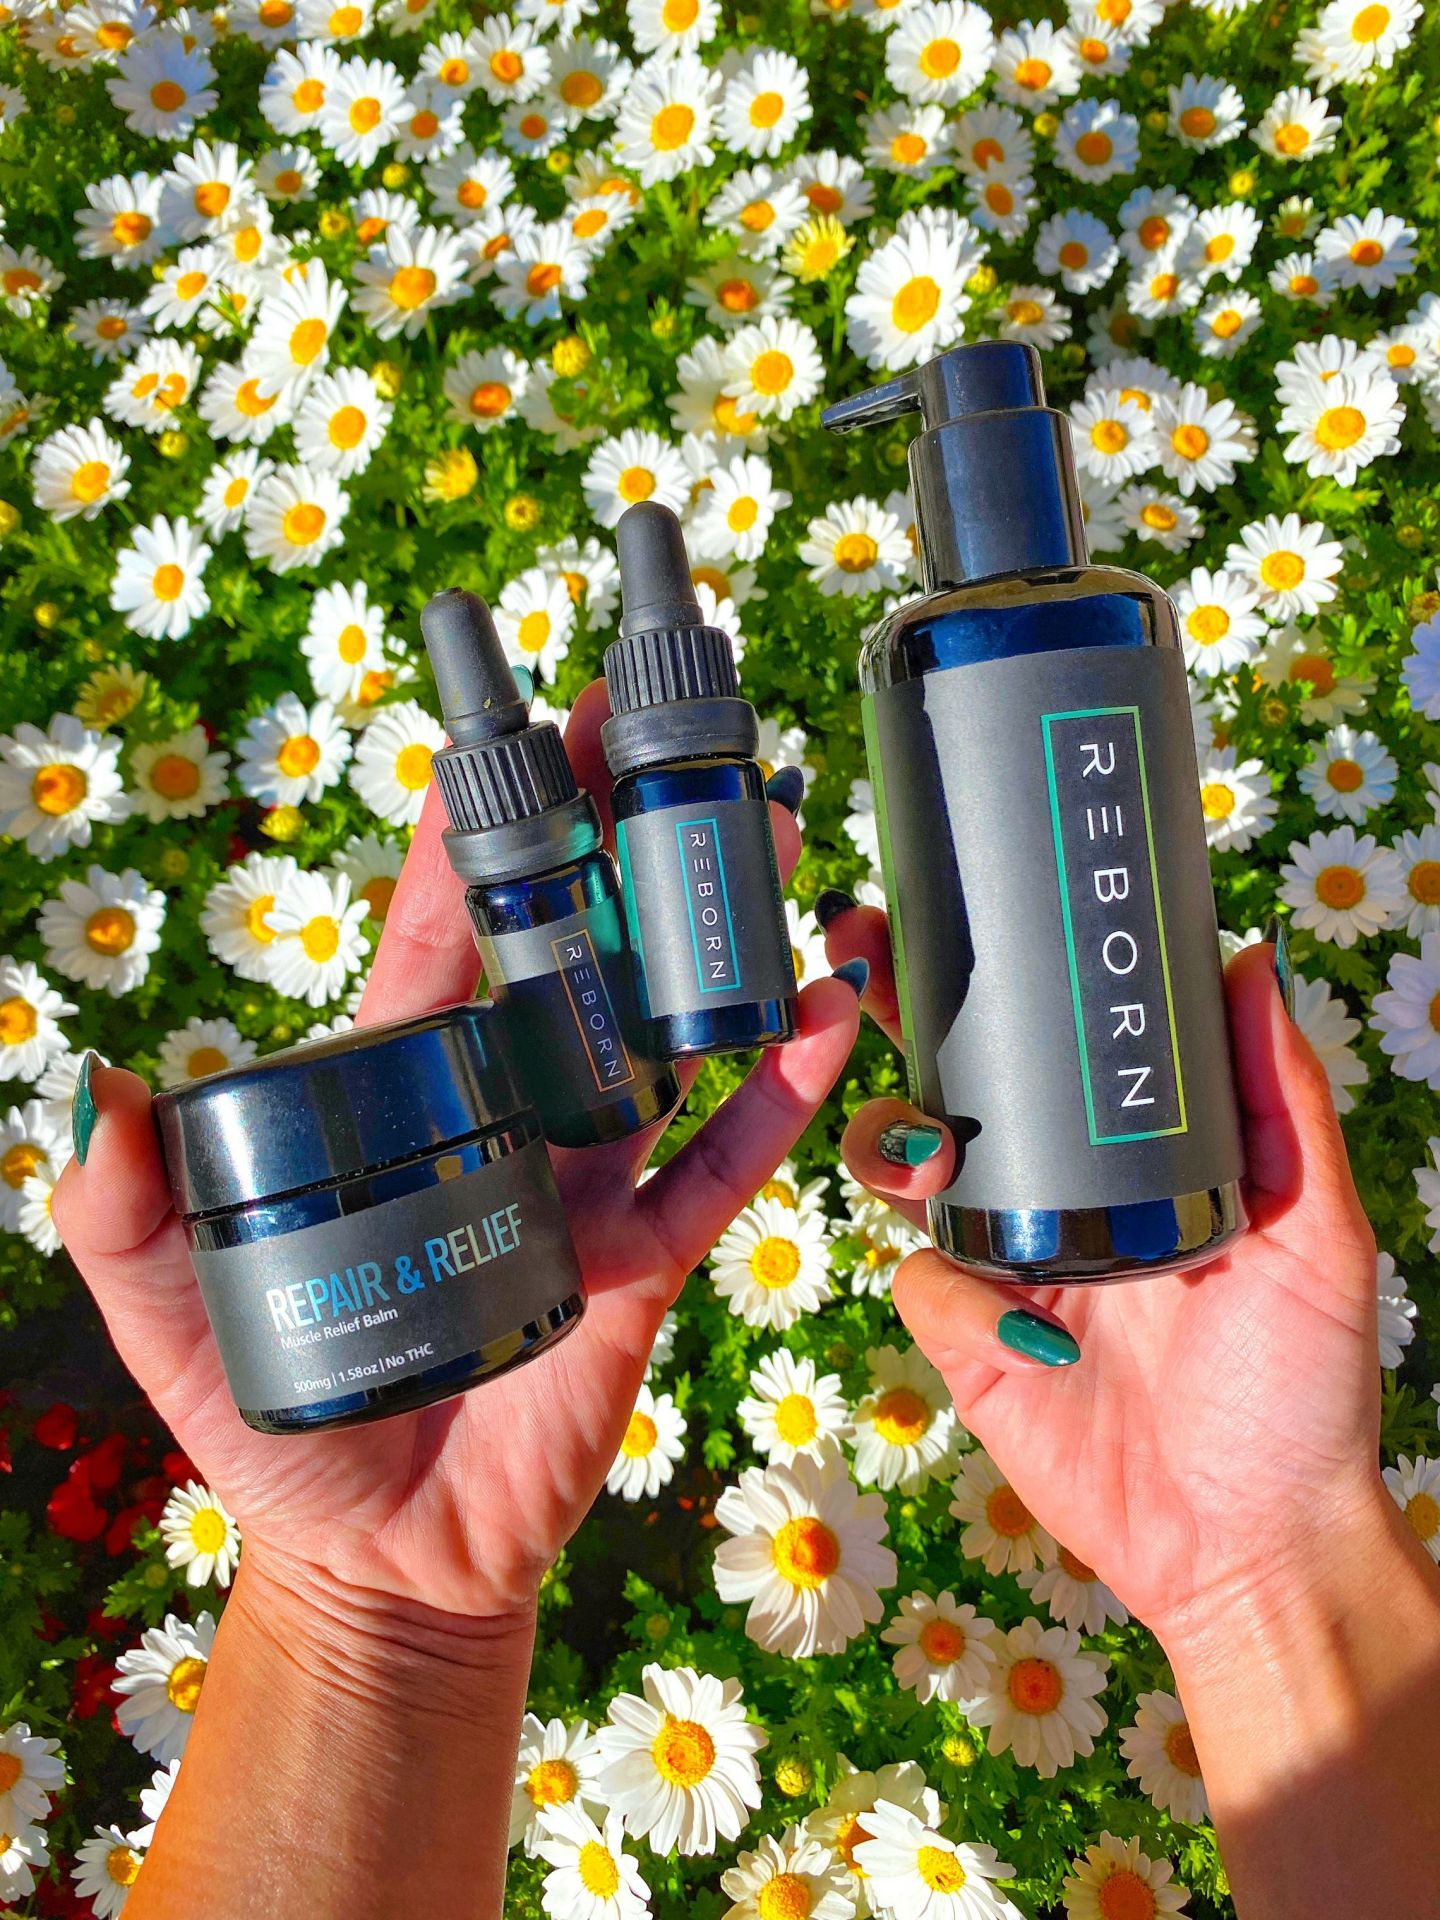 These are my highly recommended REBORN CBD products to add to your wellness routine.